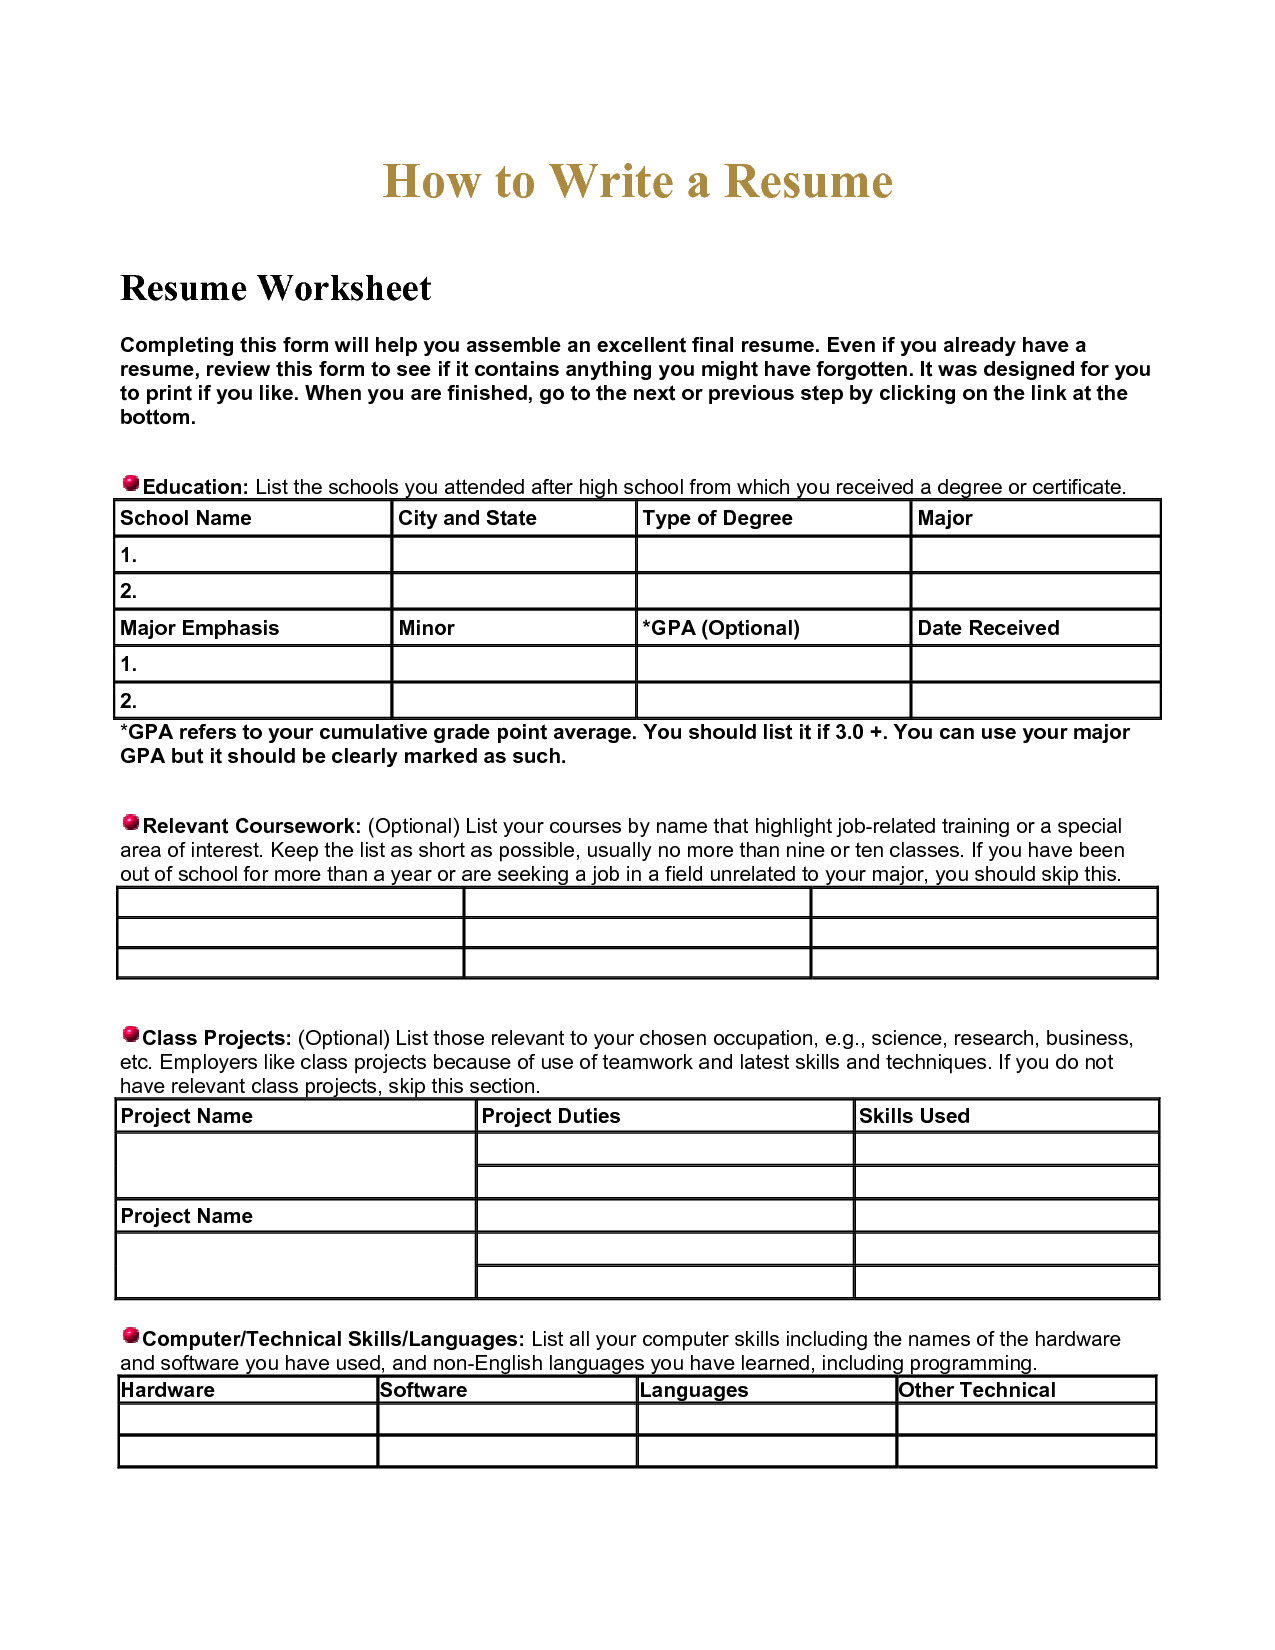 Middle School Resume Worksheet soil Worksheets for High School